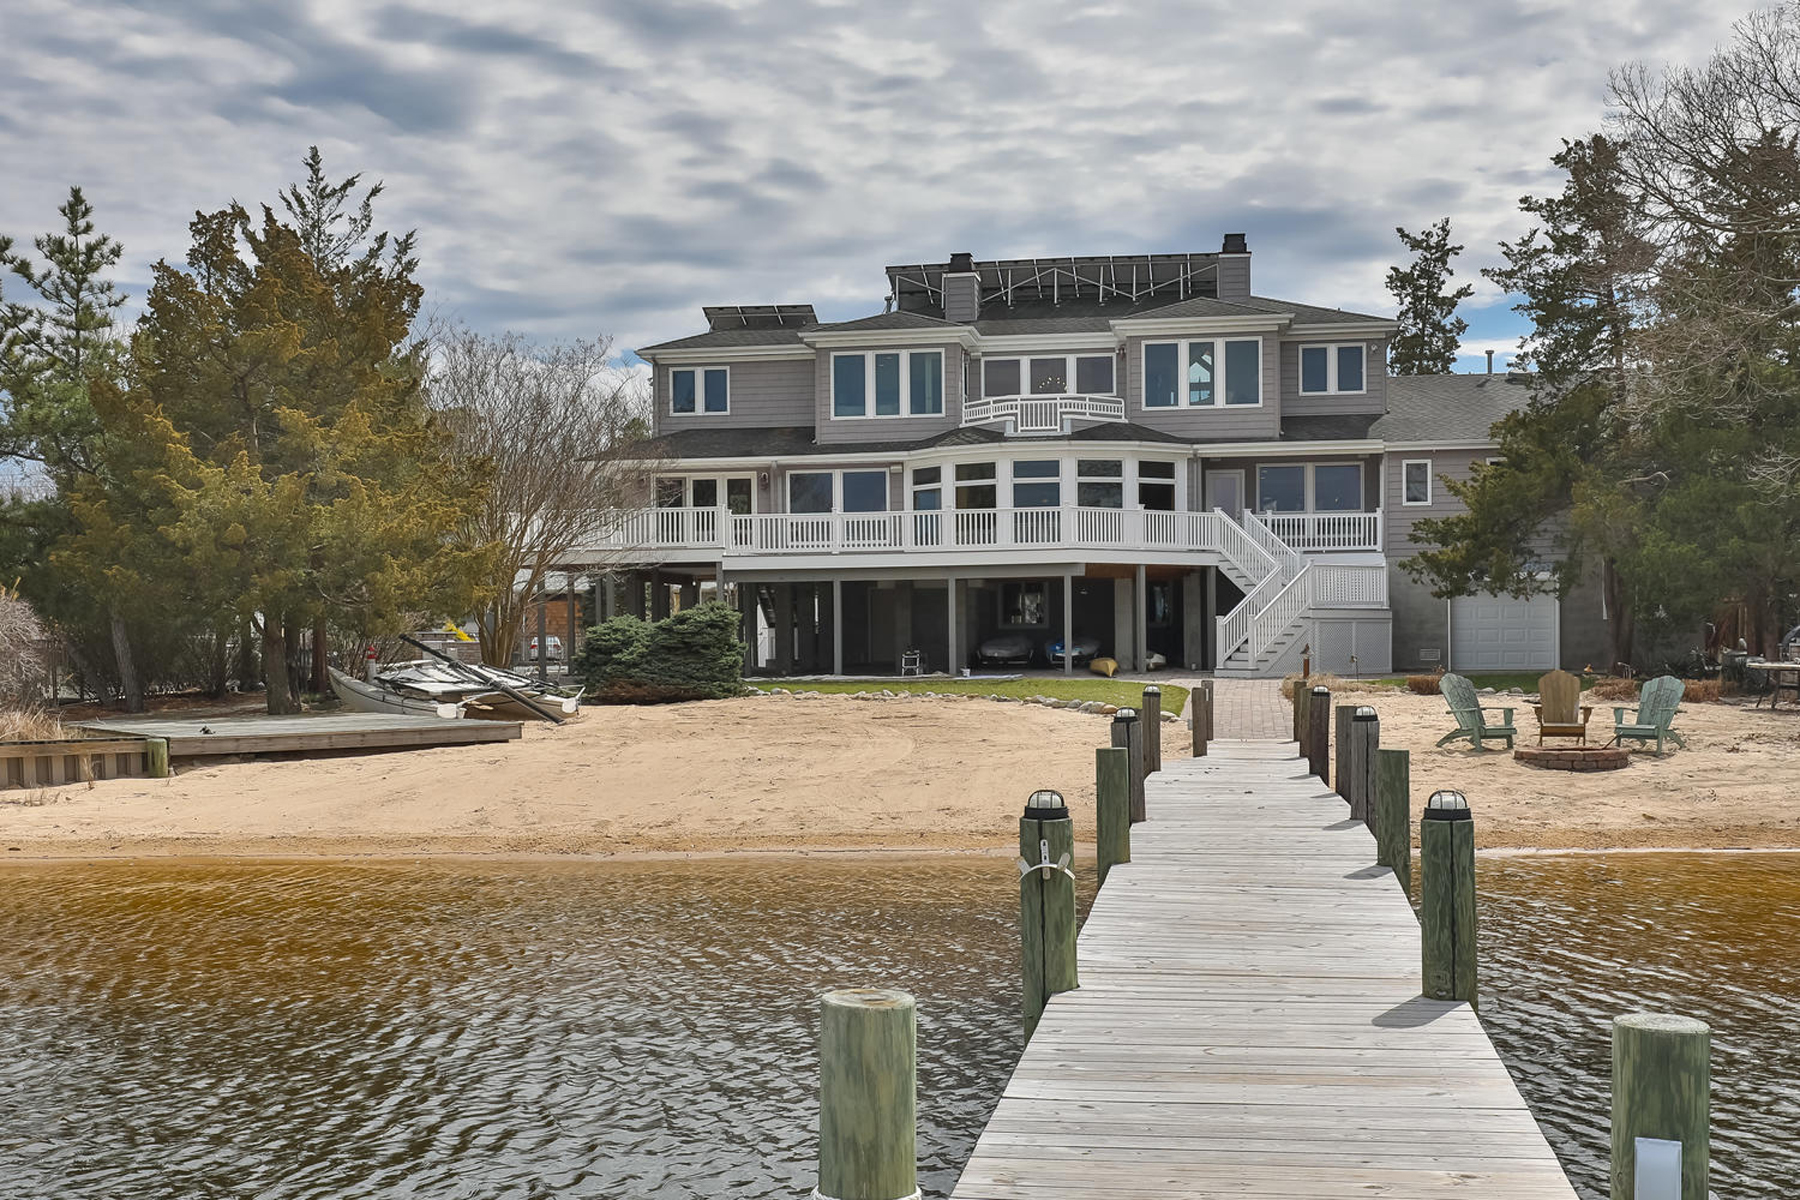 Single Family Home for Sale at Spectacular Shore Colonial On @ One Half Acre 66 Shorewood Drive Bayville, 08721 United States